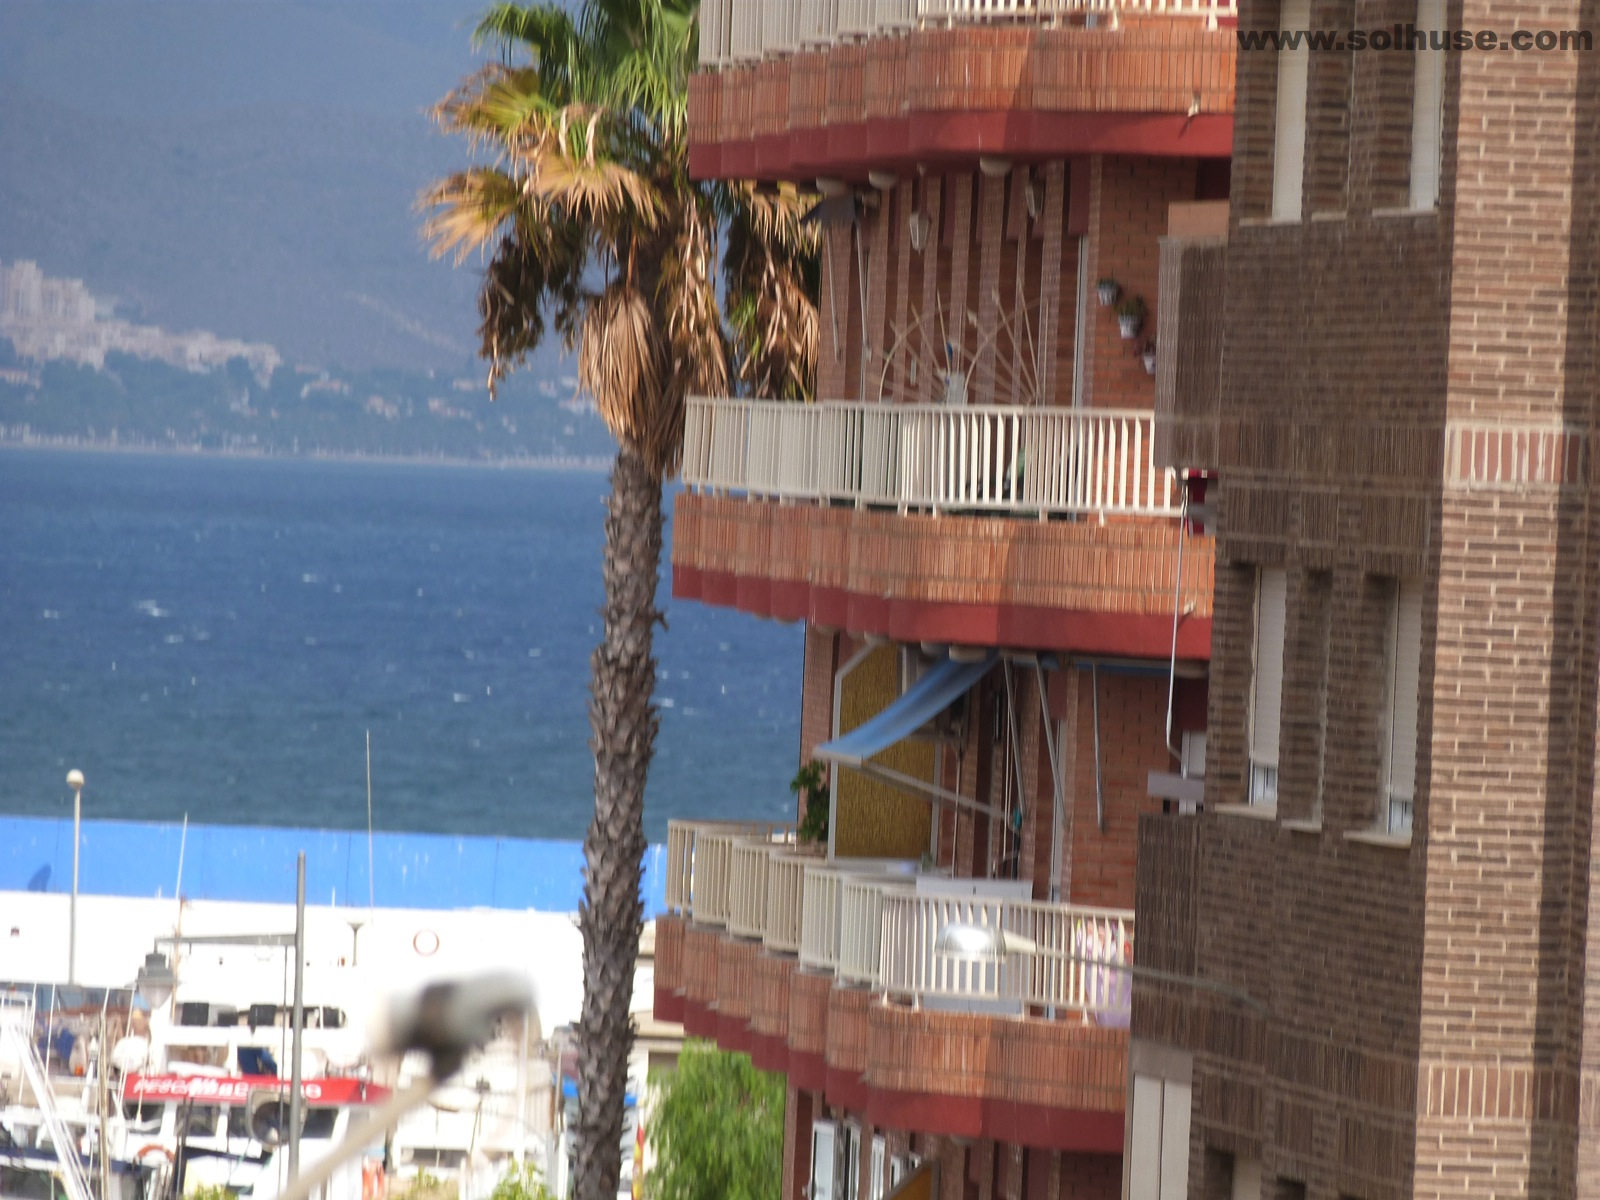 IMMACULATE LARGE APARTMENT, 3 BEDROOMs, SEA VIEWS